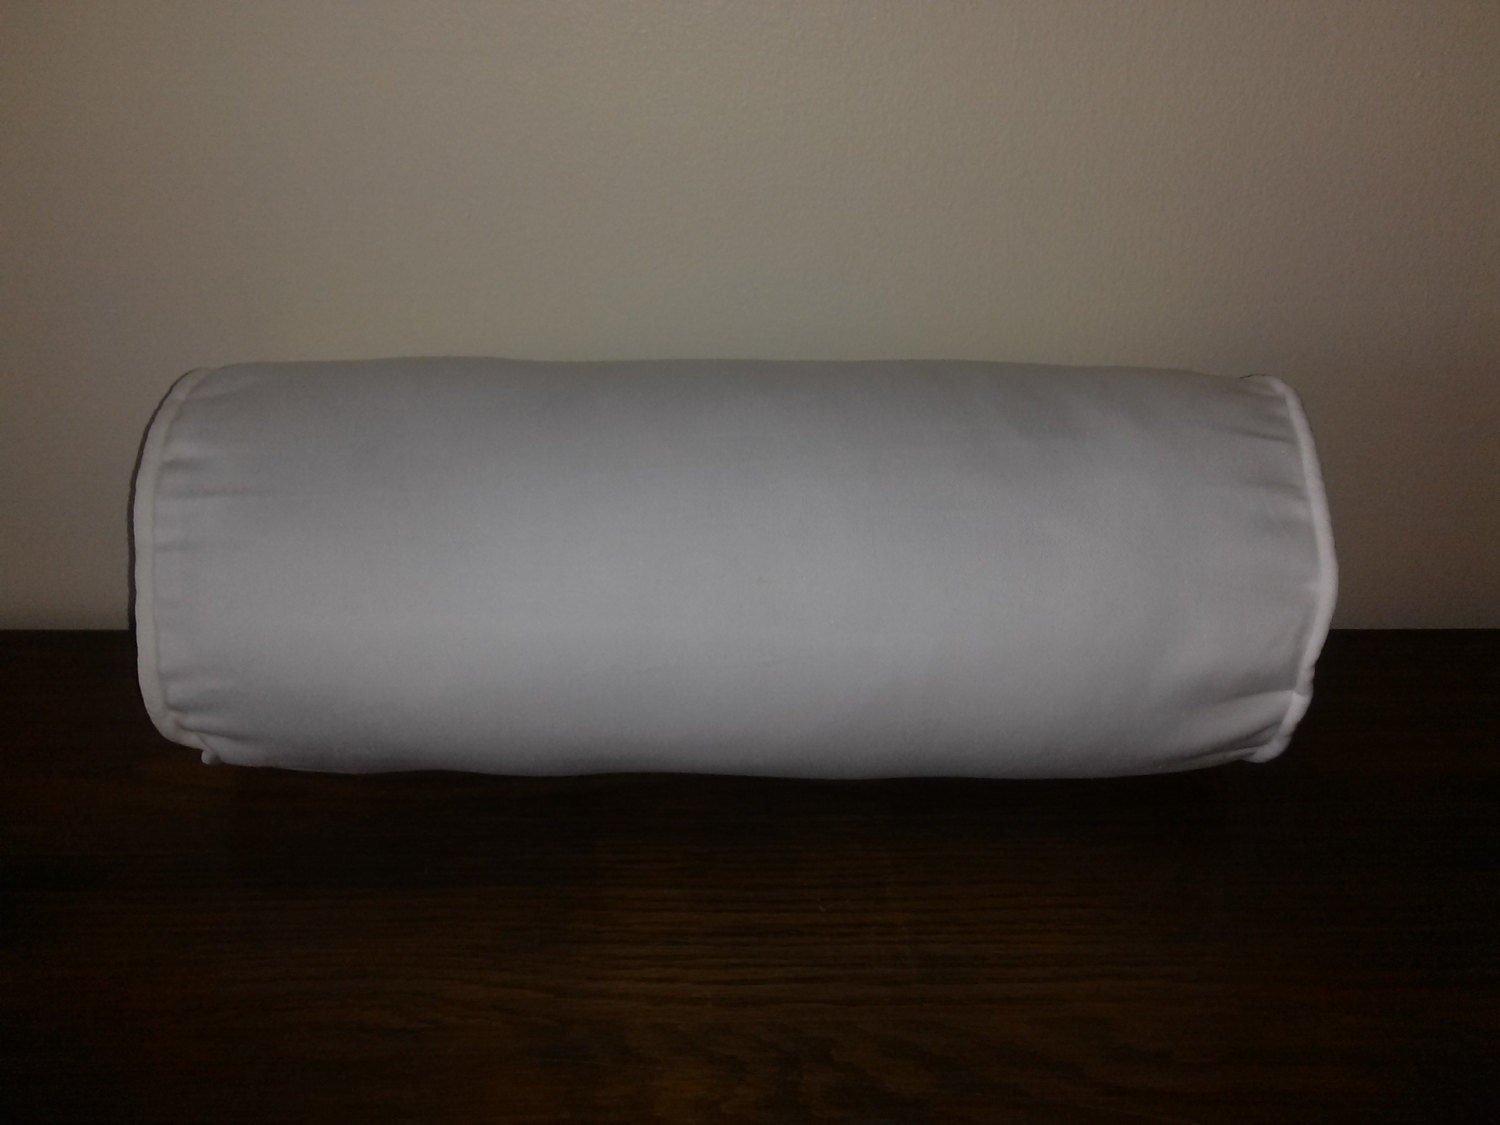 White bolster pillow cover white cotton twill by Sew bolster pillow cover